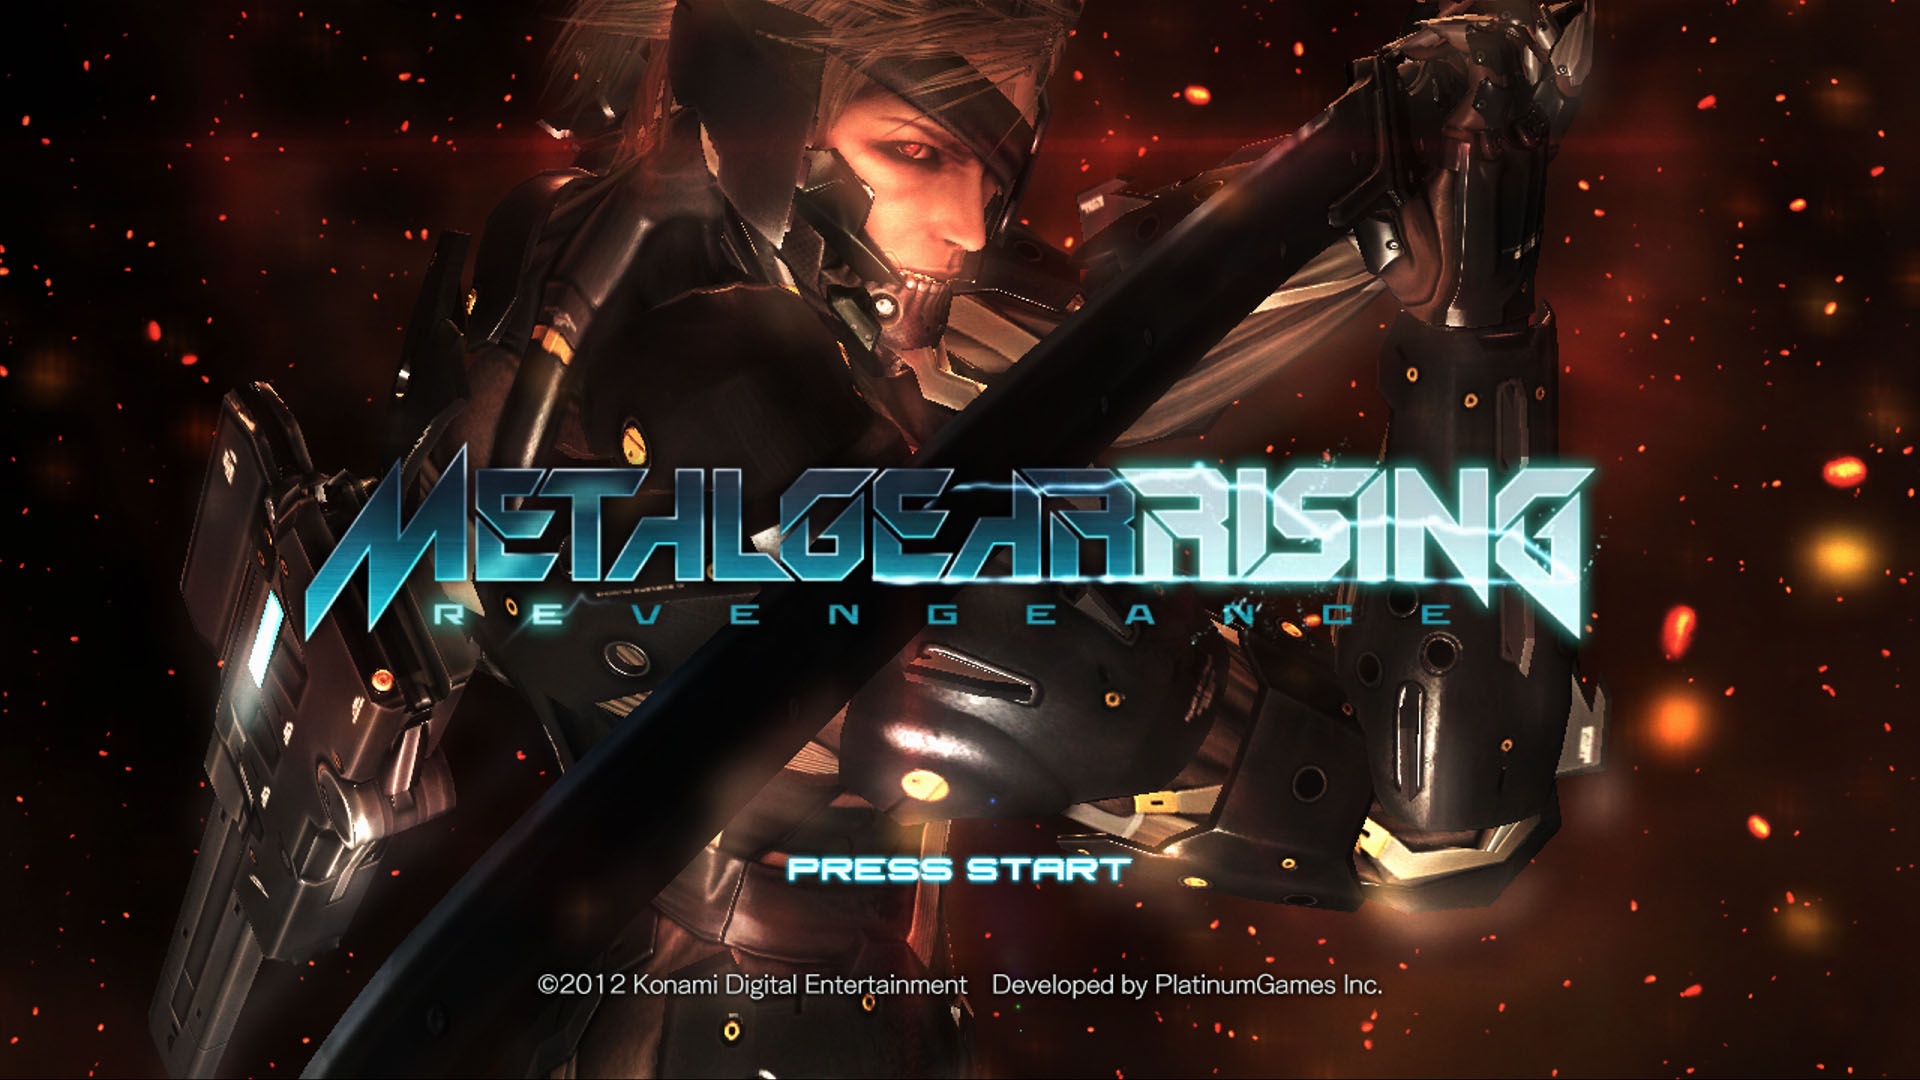 Metal Gear Rising Revengeance Xbox 360 Demo Download [Jtag